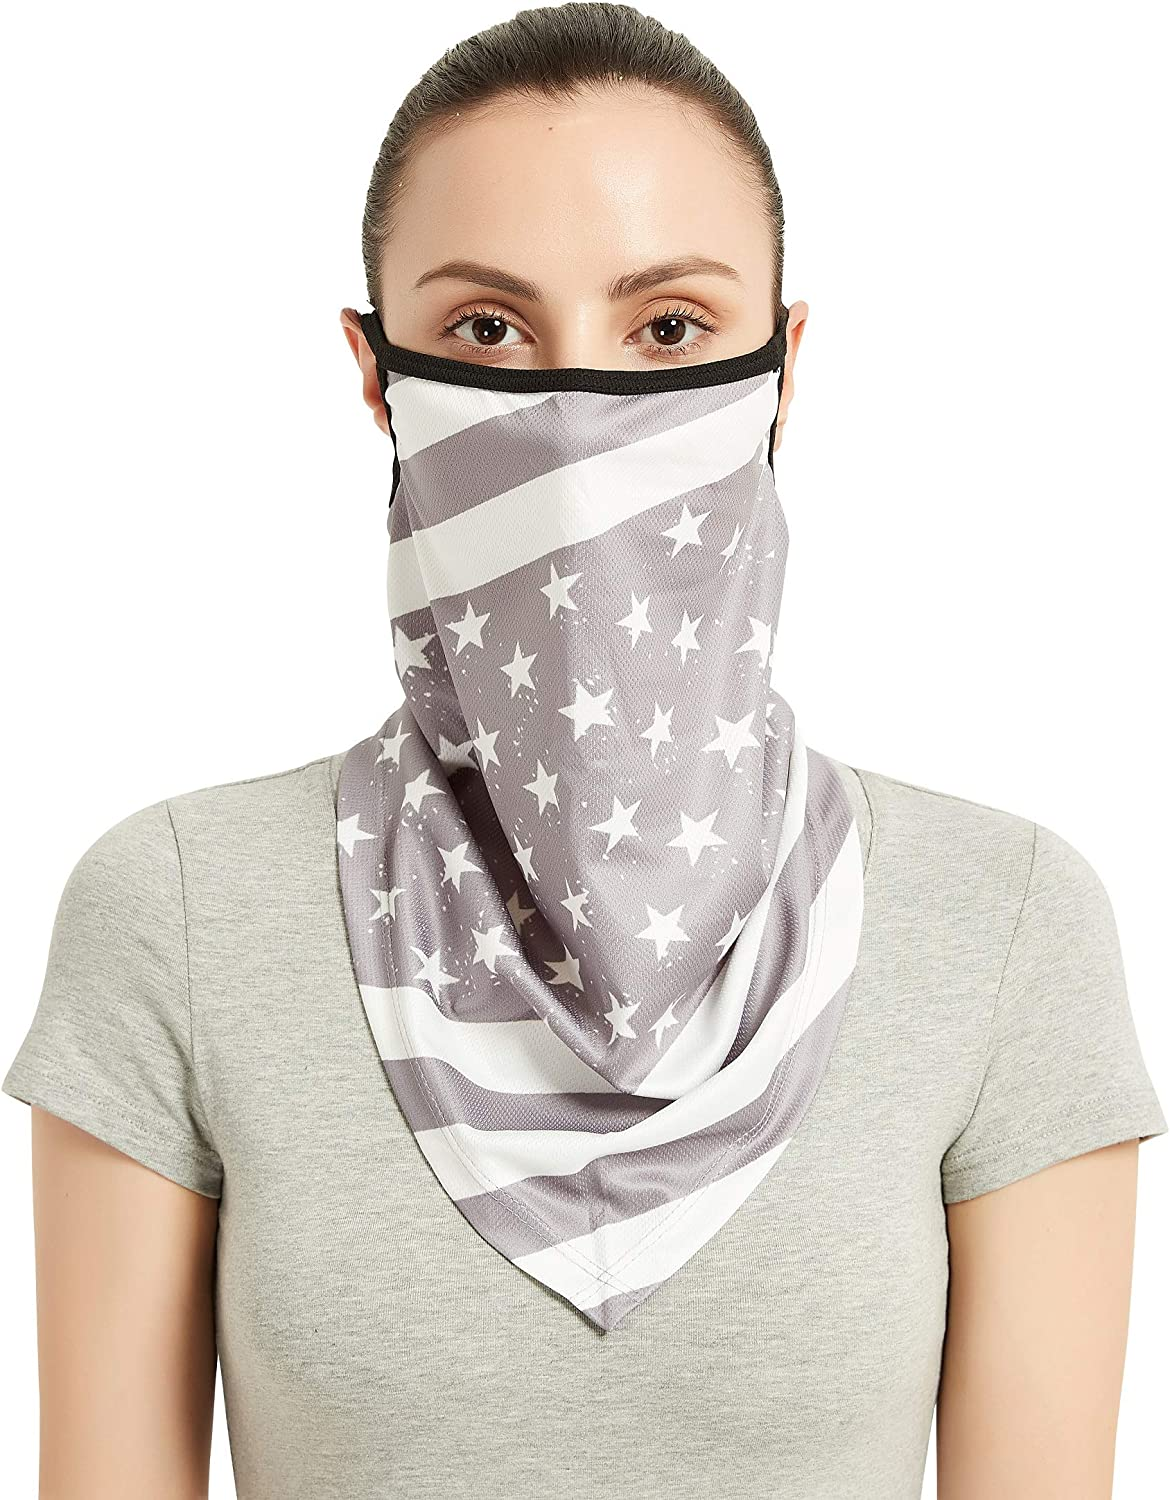 AWLE Summer Face Scarf with Ear Loops, Cooling Sport Neck Gaiter Bandana Headwear for Dust Wind UV Protection